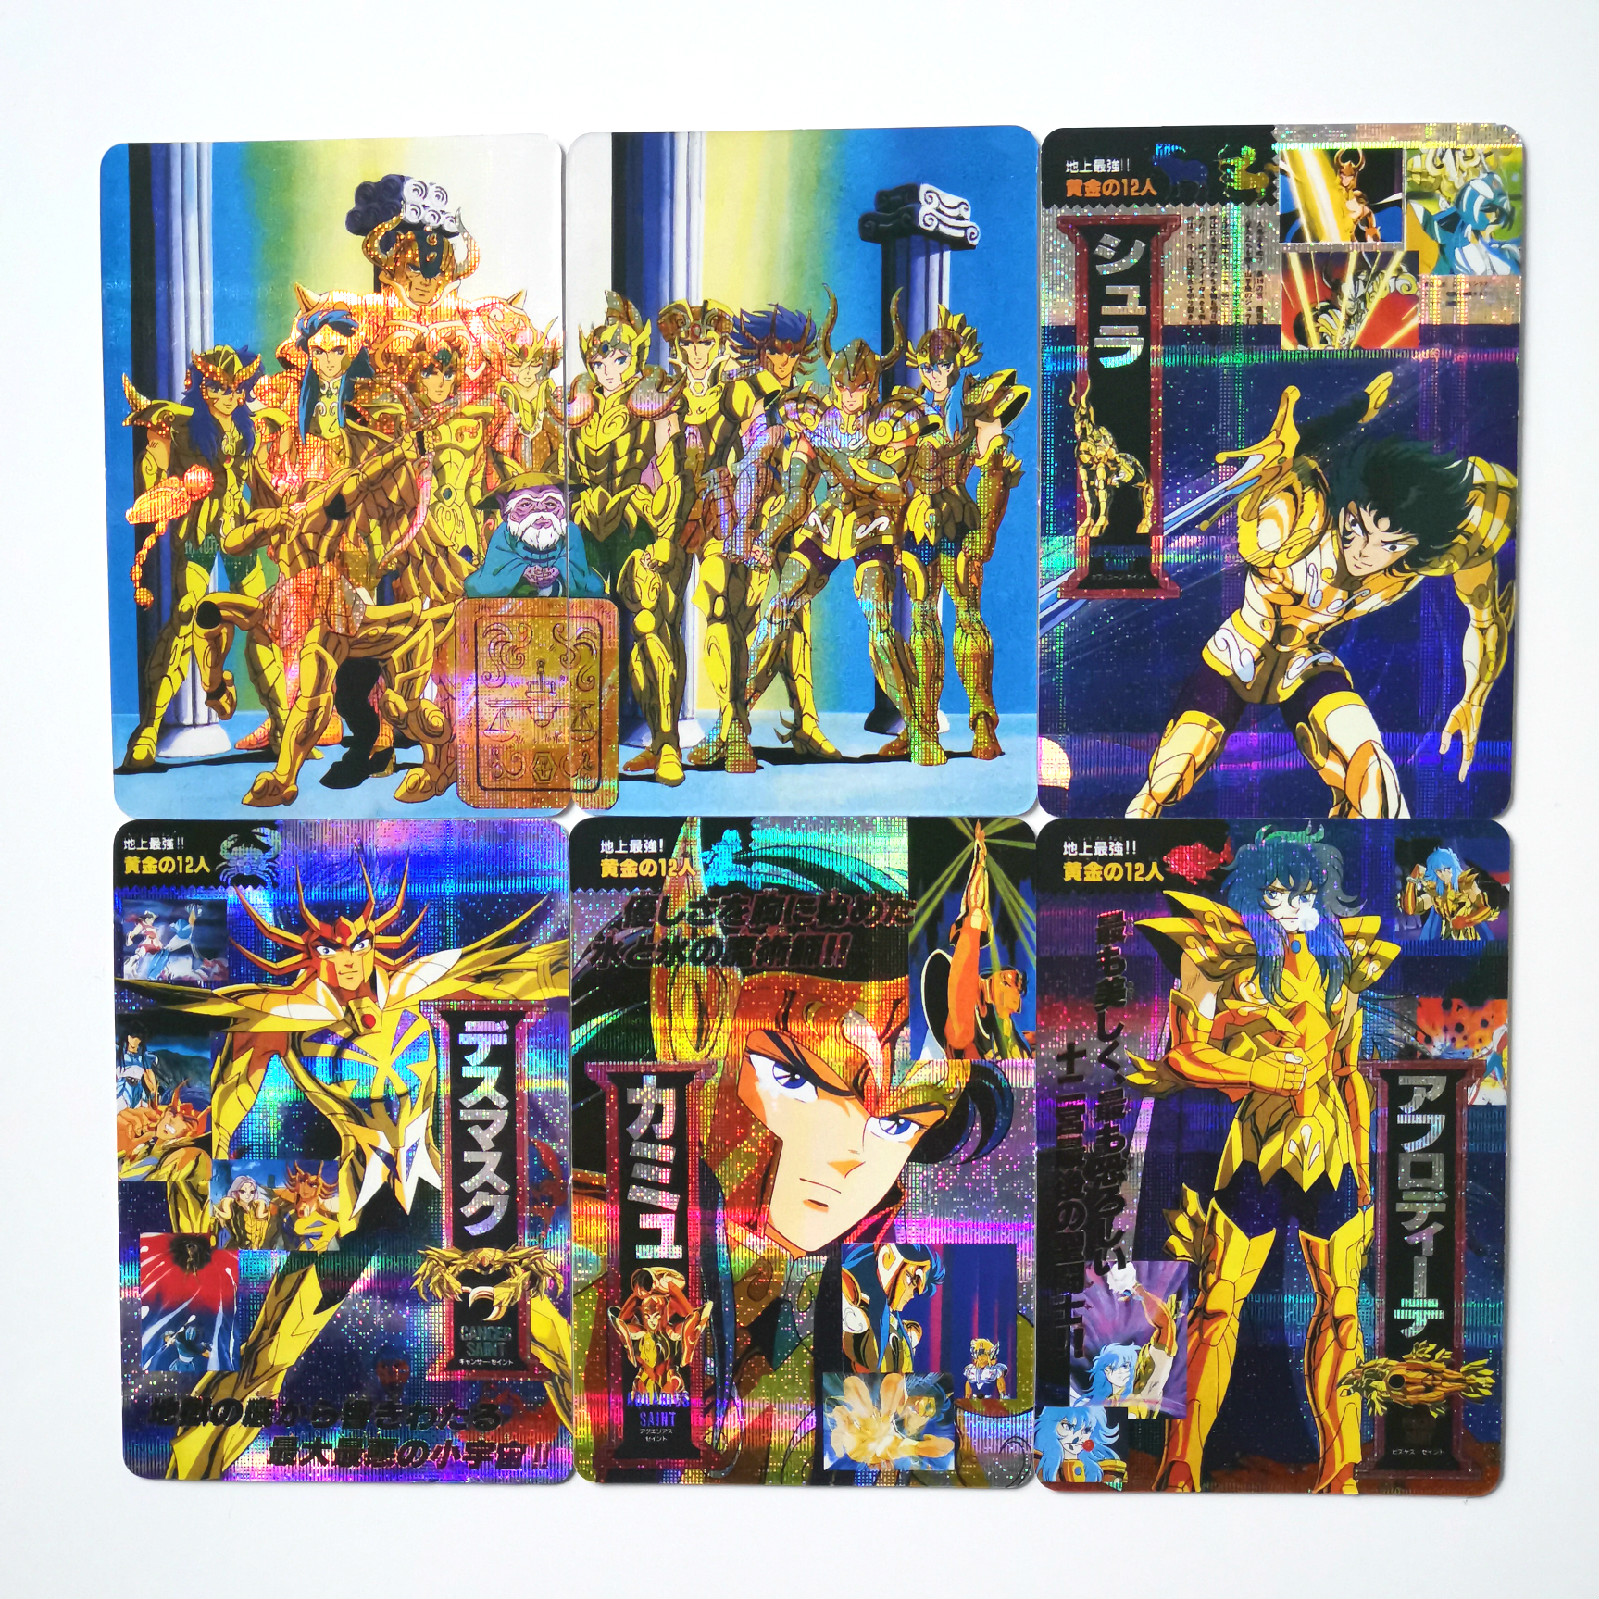 14pcs/set Saint Seiya The Strongest Gold Twelve Toys Hobbies Hobby Collectibles Game Collection Anime Cards